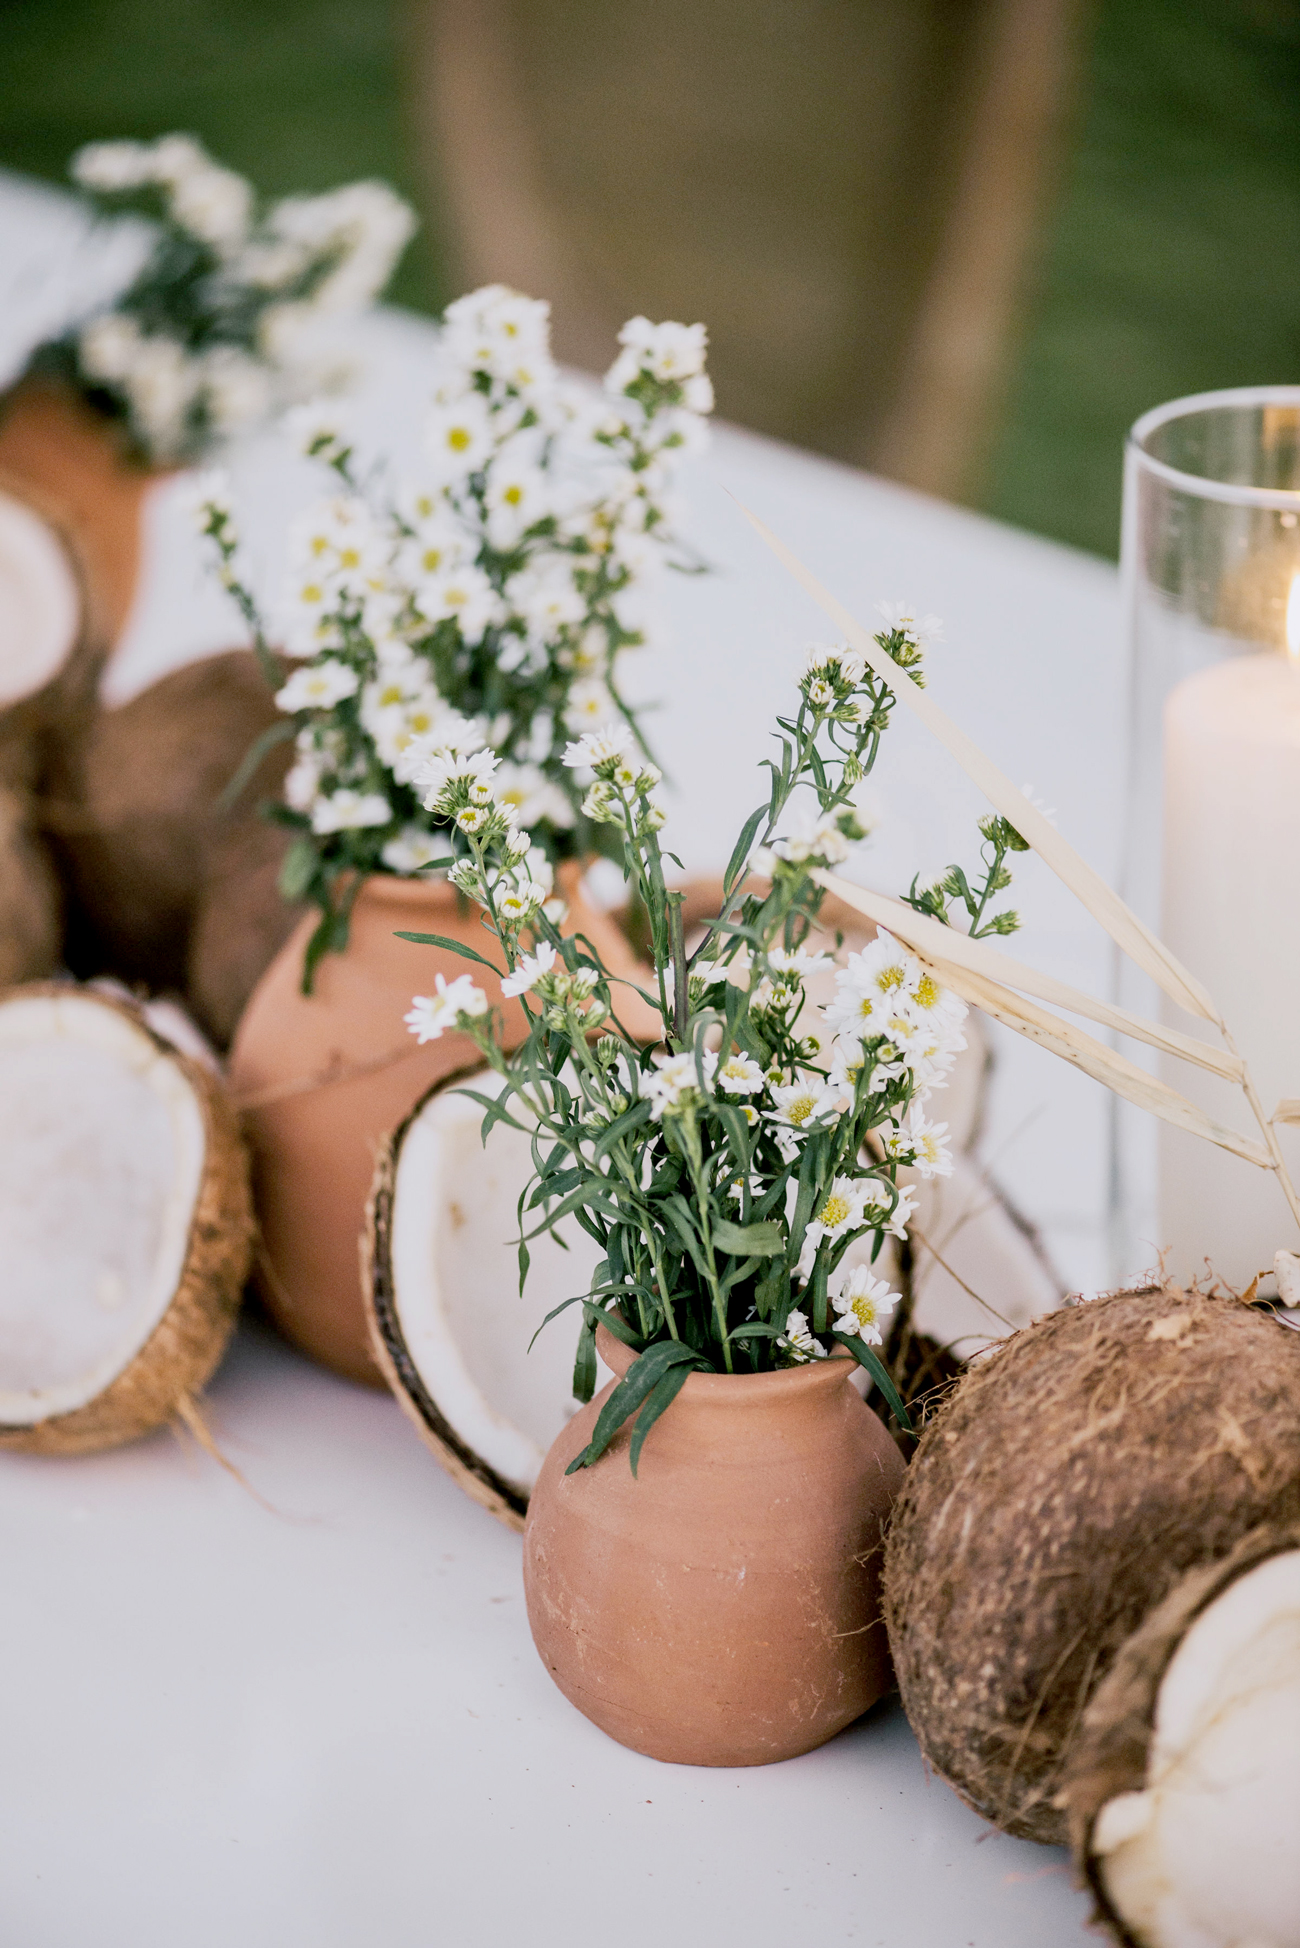 broken coconuts, terra cotta pots, and white floral table decor